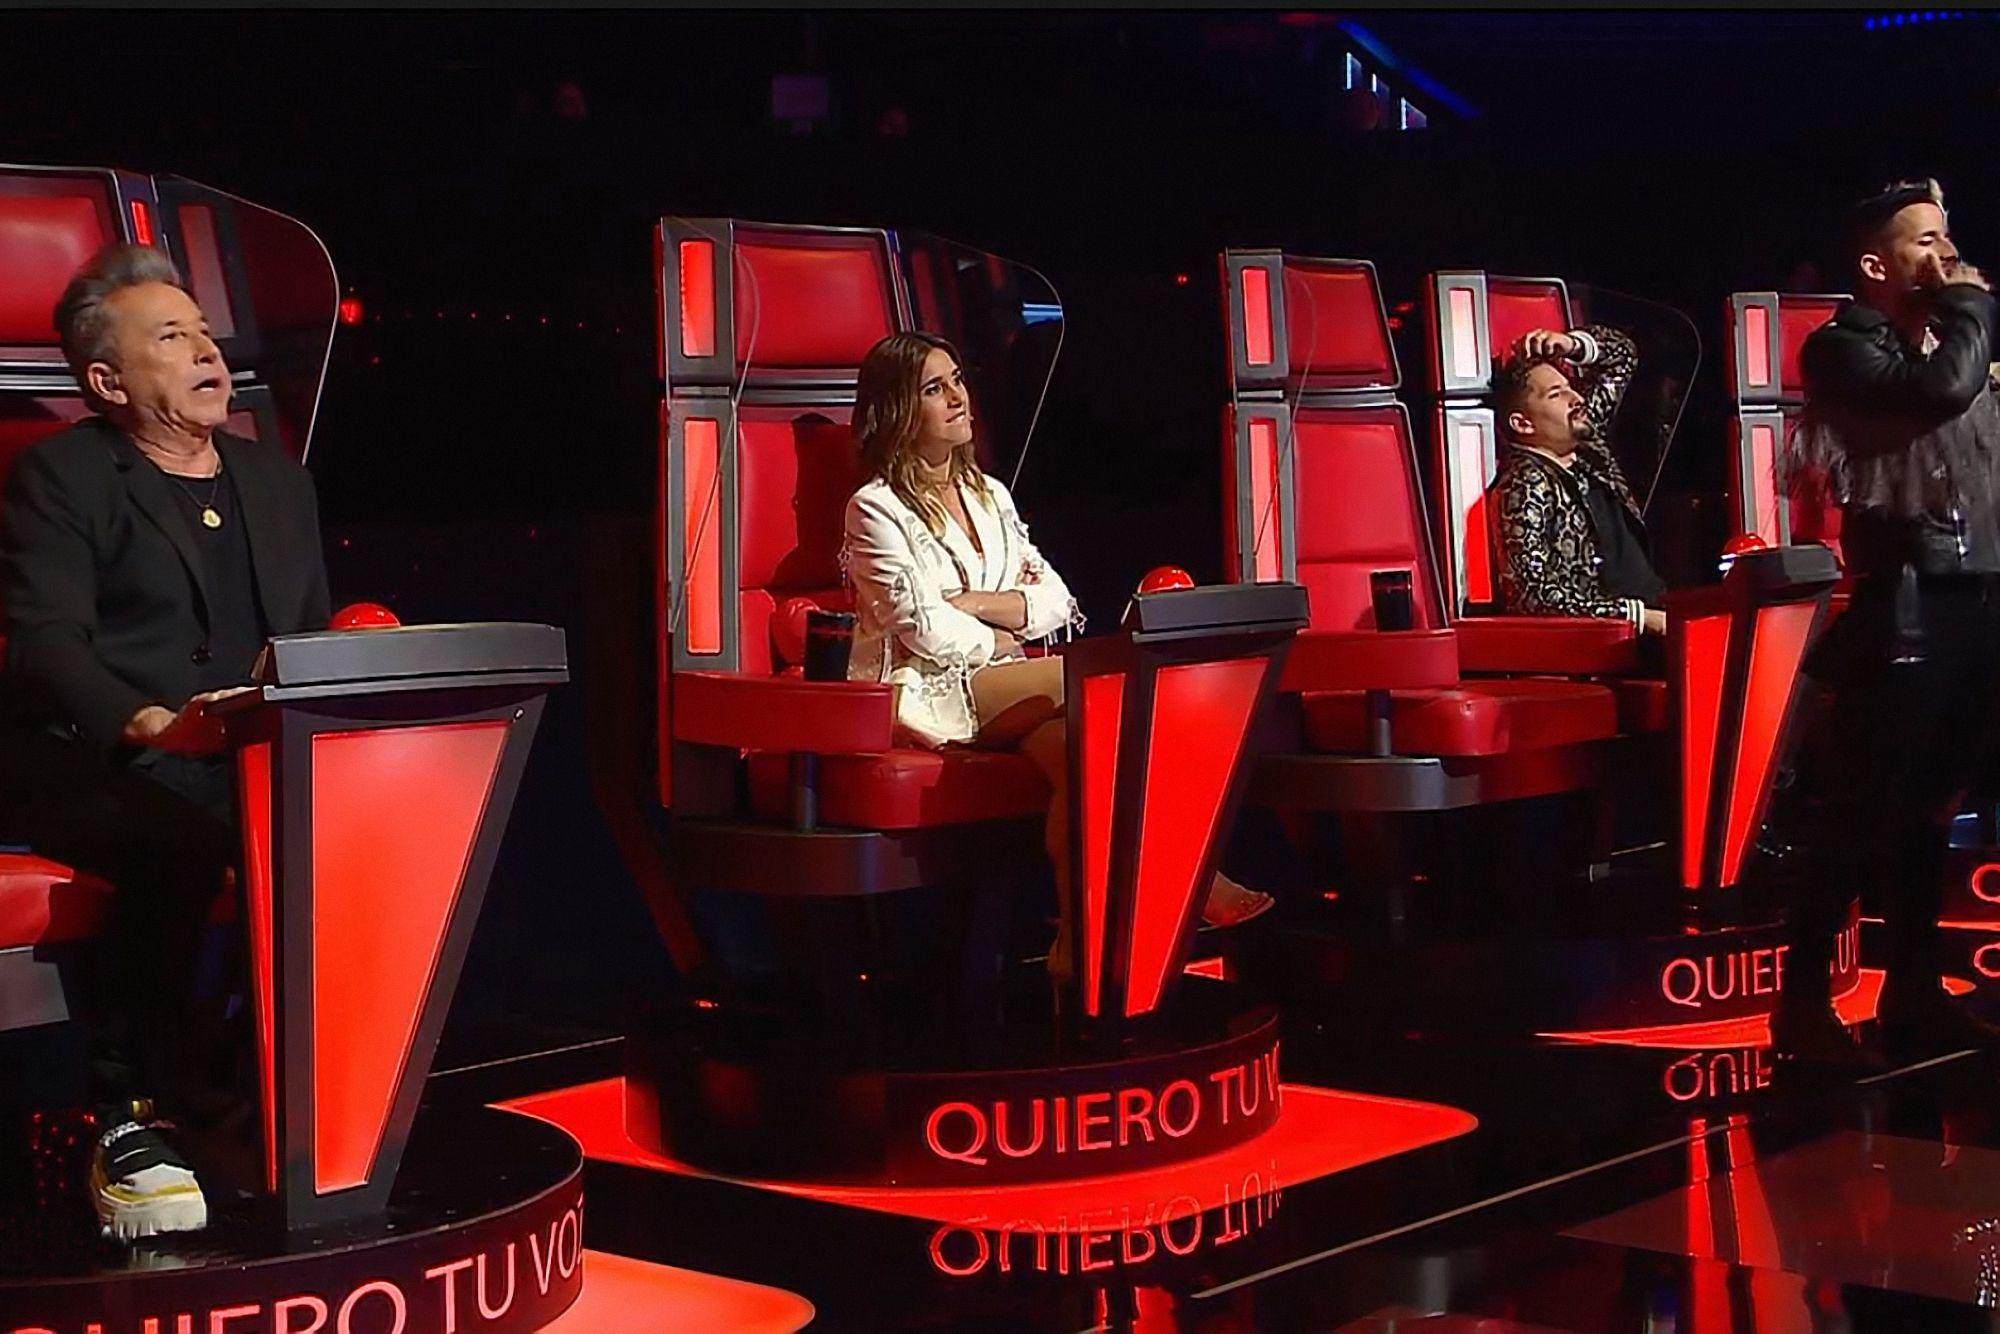 1624976802 La Voz the shame of the jury when making a